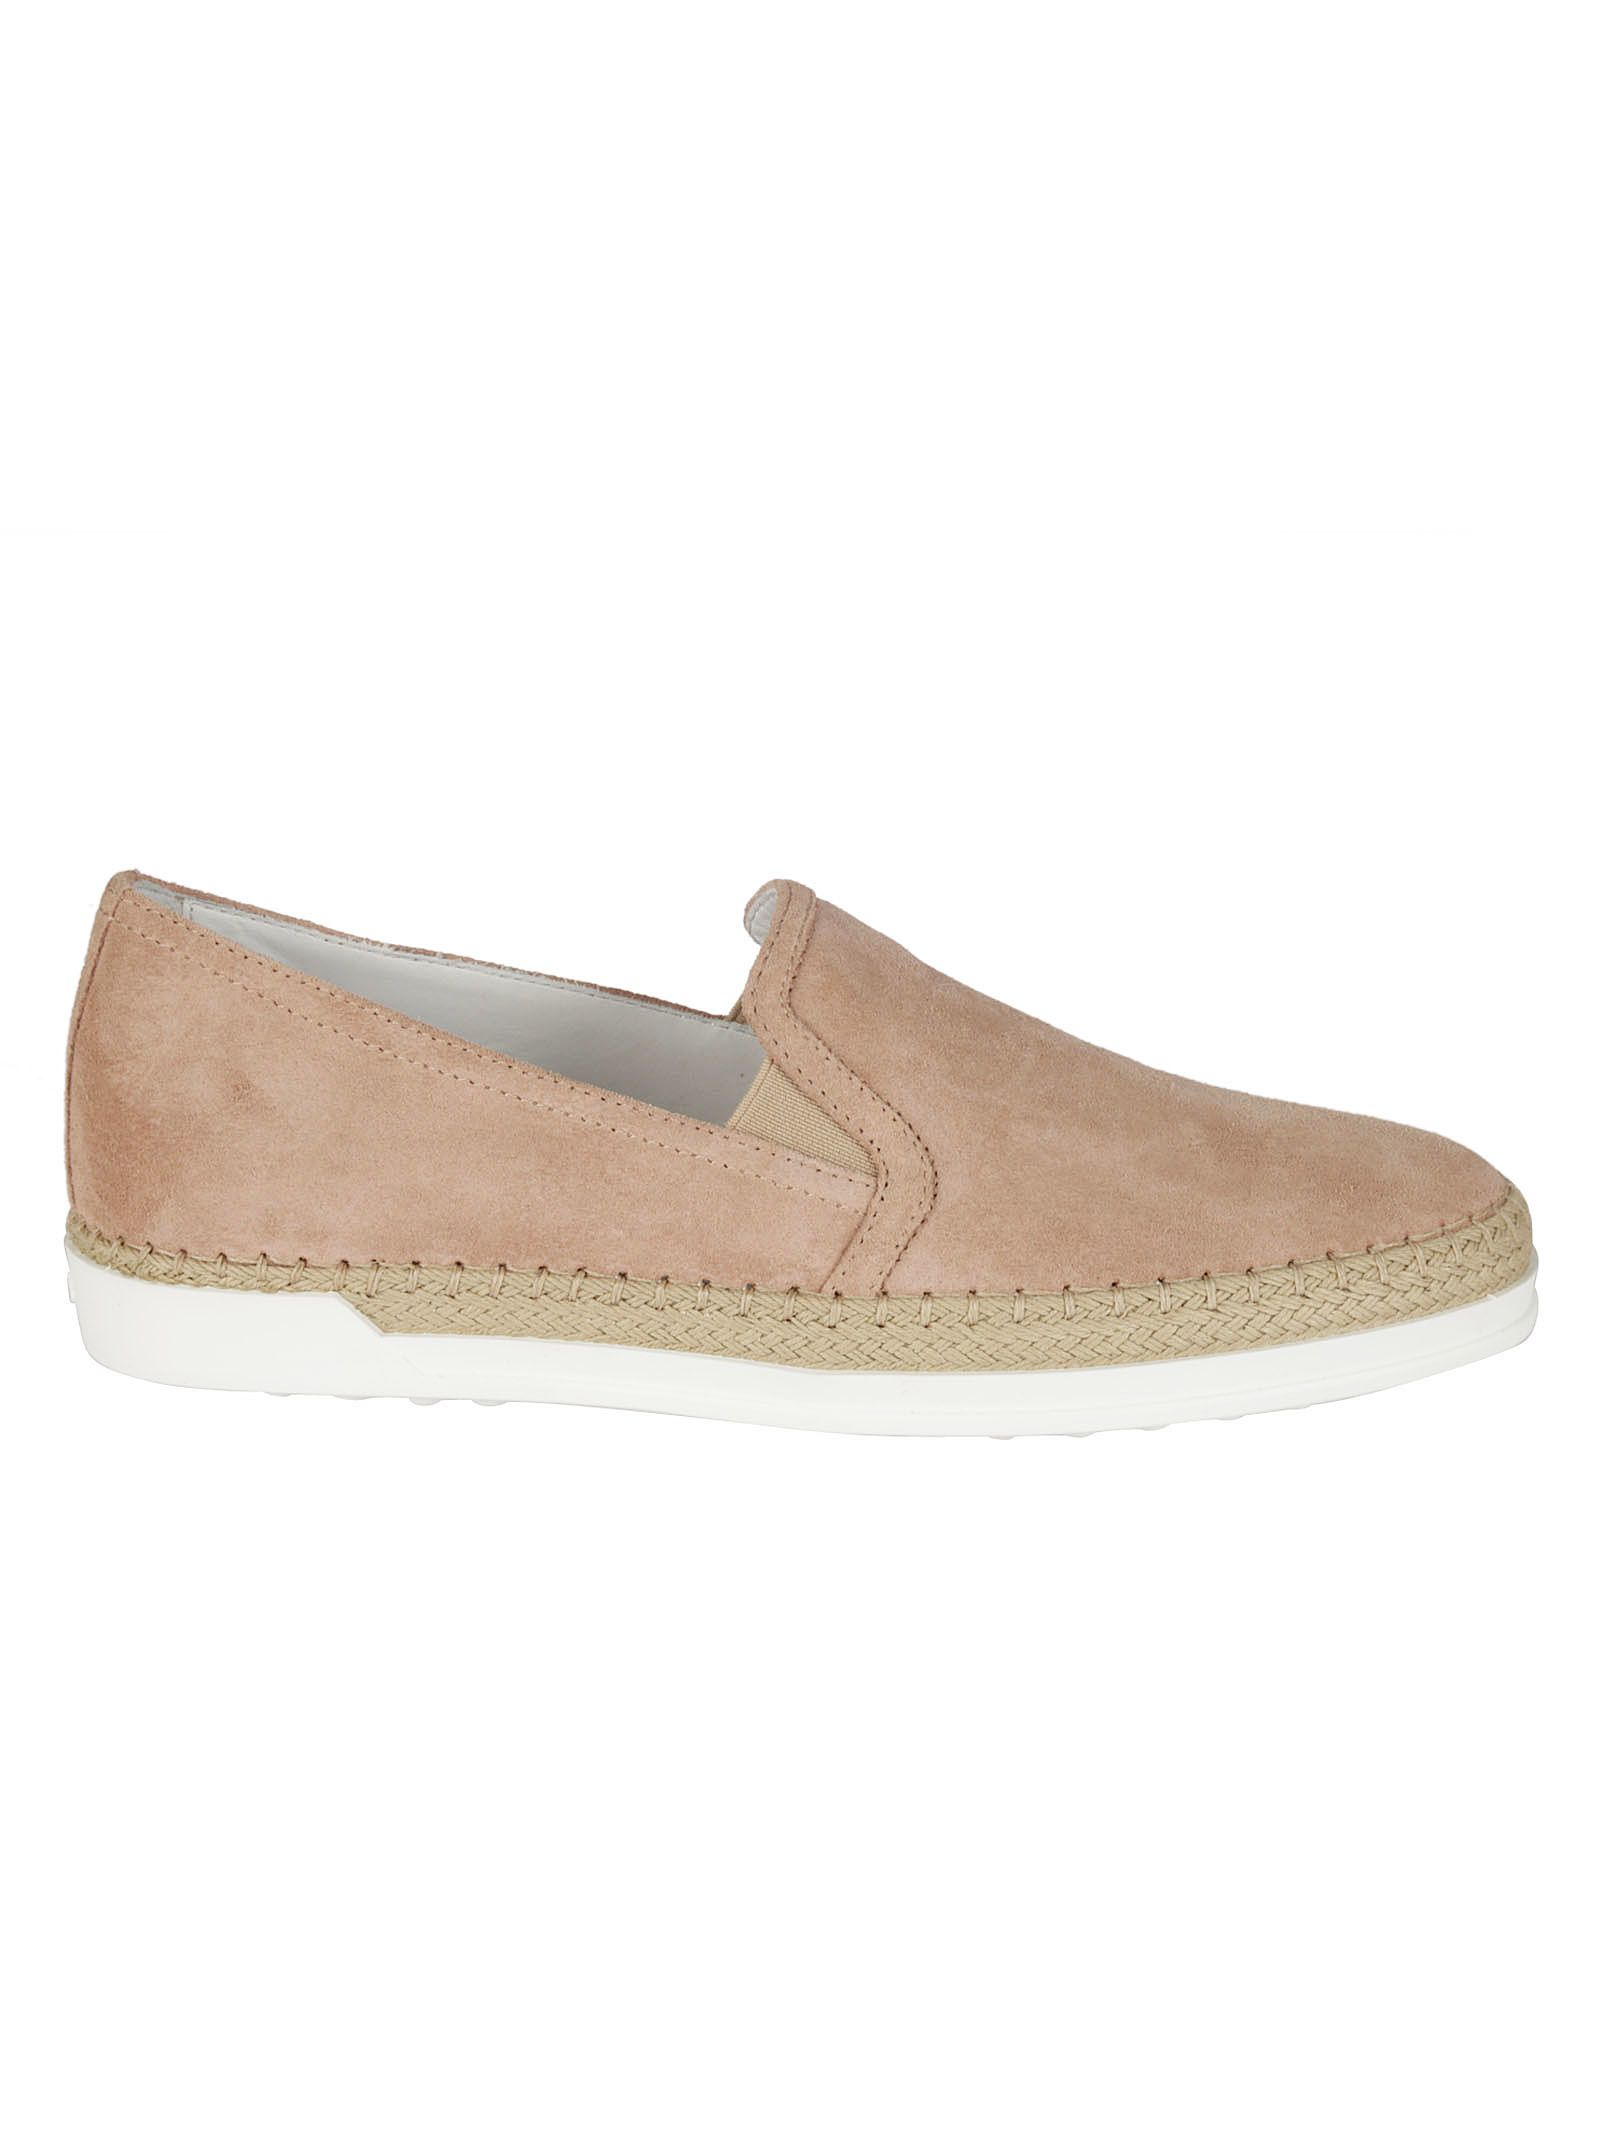 Tods Suede Slip-On Sneakers